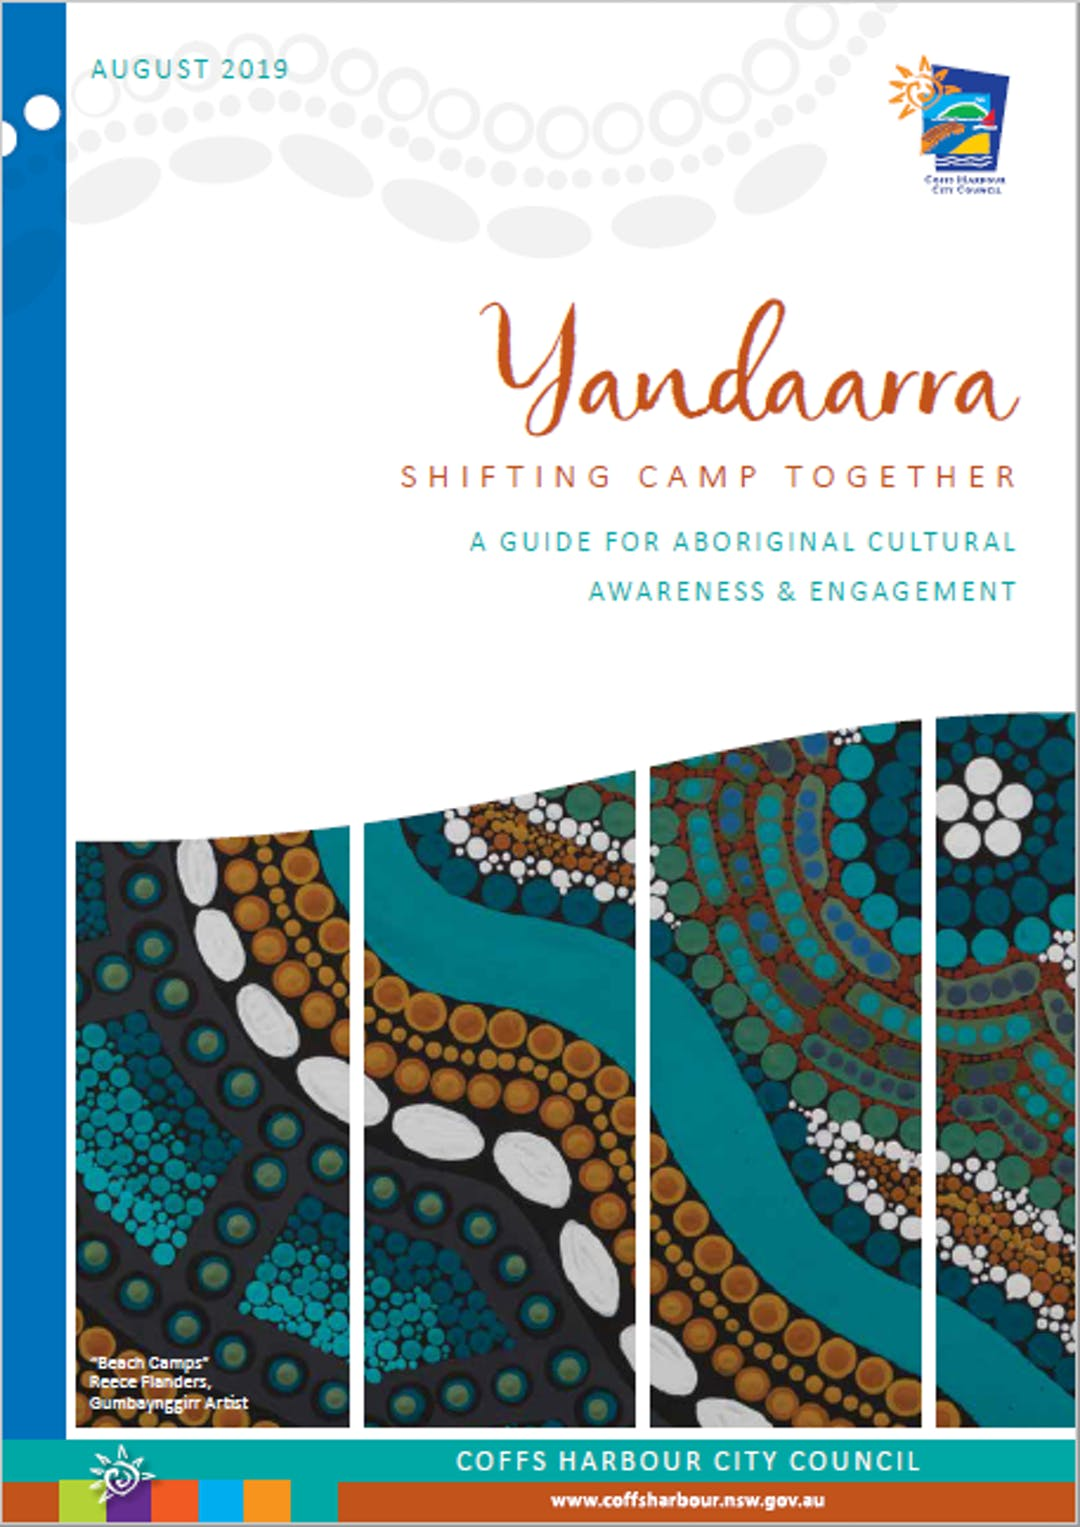 'Yandaarra – Shifting Camp Together' - Aboriginal Cultural Awareness and Engagement Guide was adopted by Council on 8 August 2019.